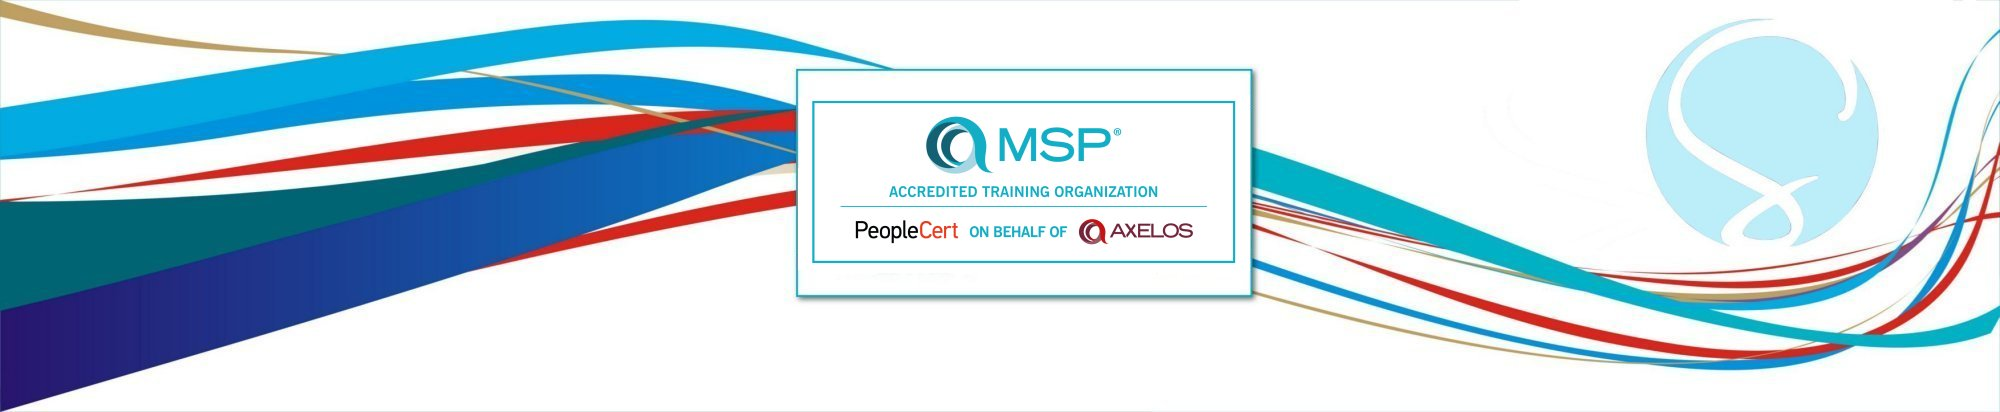 MSP Training & Certification